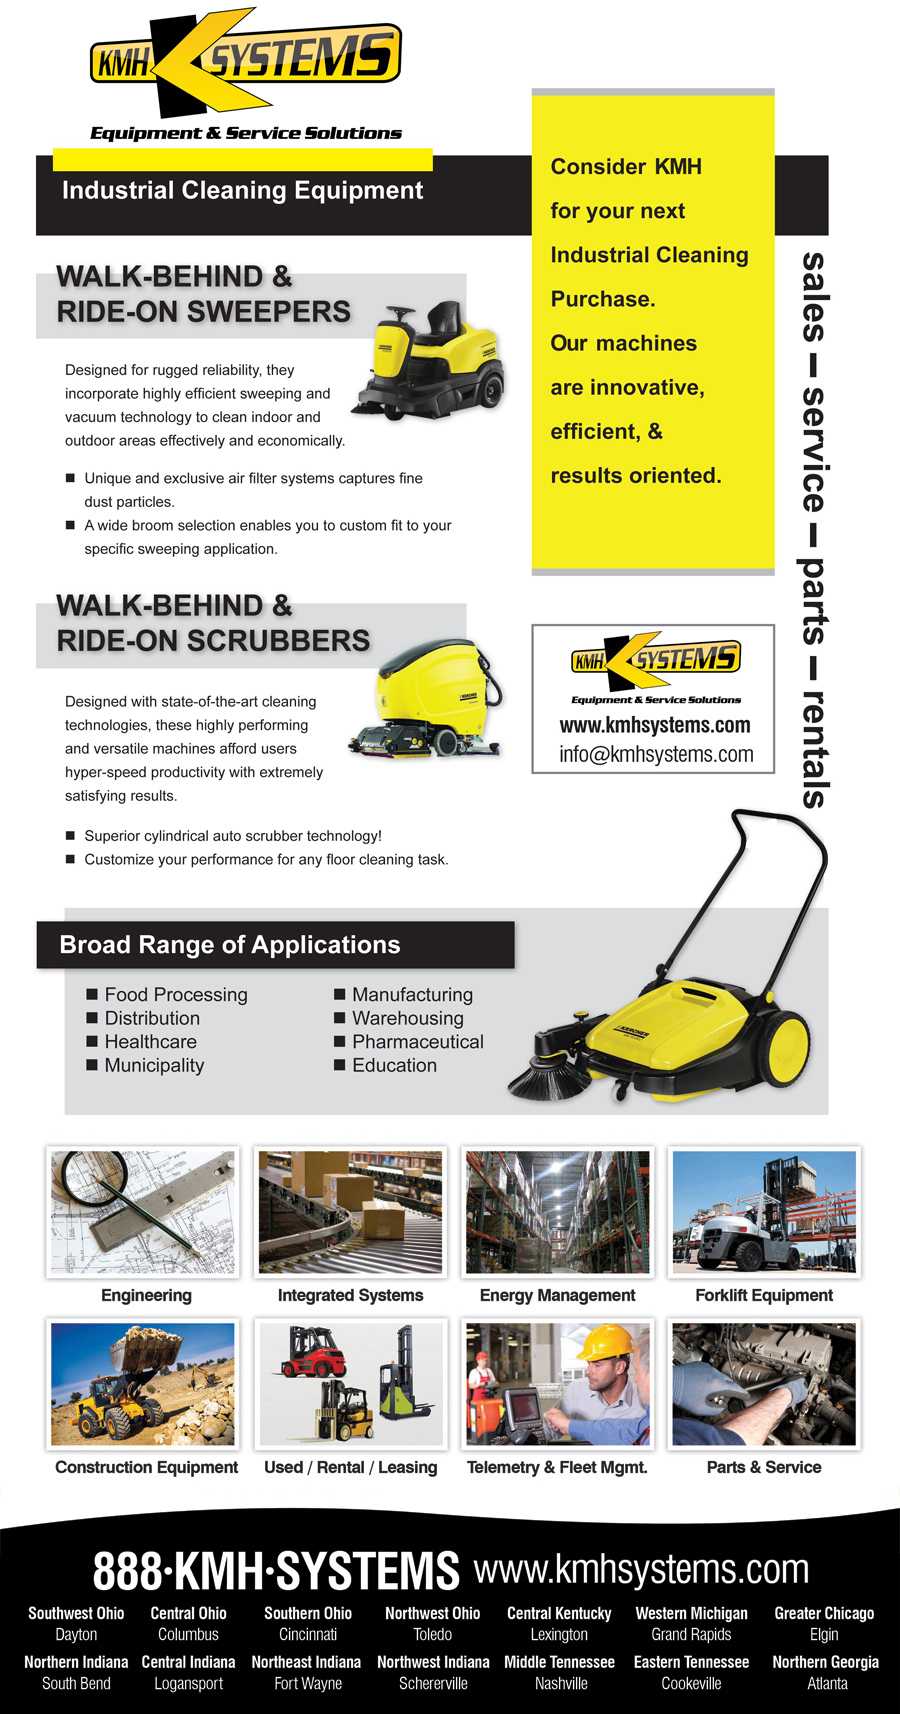 KMH Systems Cleaning Equipment